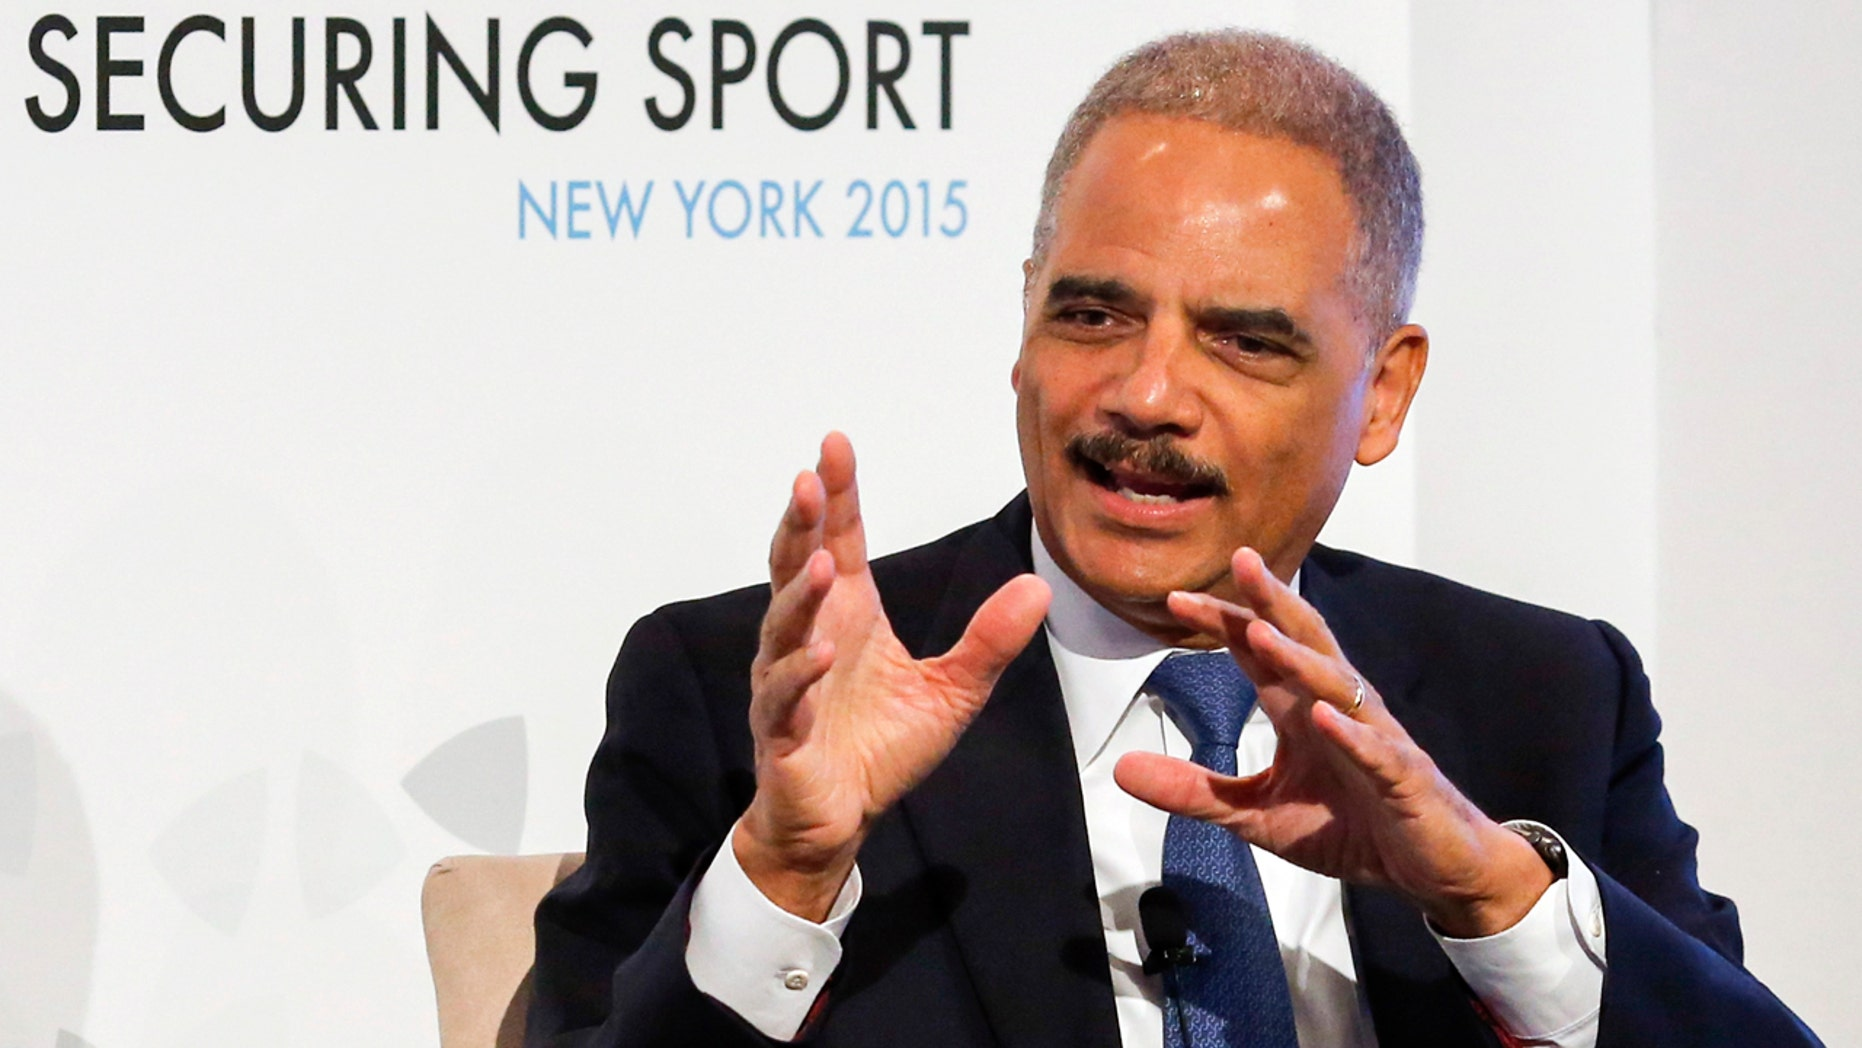 ICSS - Securing Sport 2015 - Harold Pratt House, New York - 4/11/15Former U.S. Attorney General Eric Holder speaks on Day 2 of Securing Sport 2015 - the annual conference of the International Centre for Sport Security (ICSS) Photo Eduardo Munoz for ICSSLivepic - RTX1UT6H